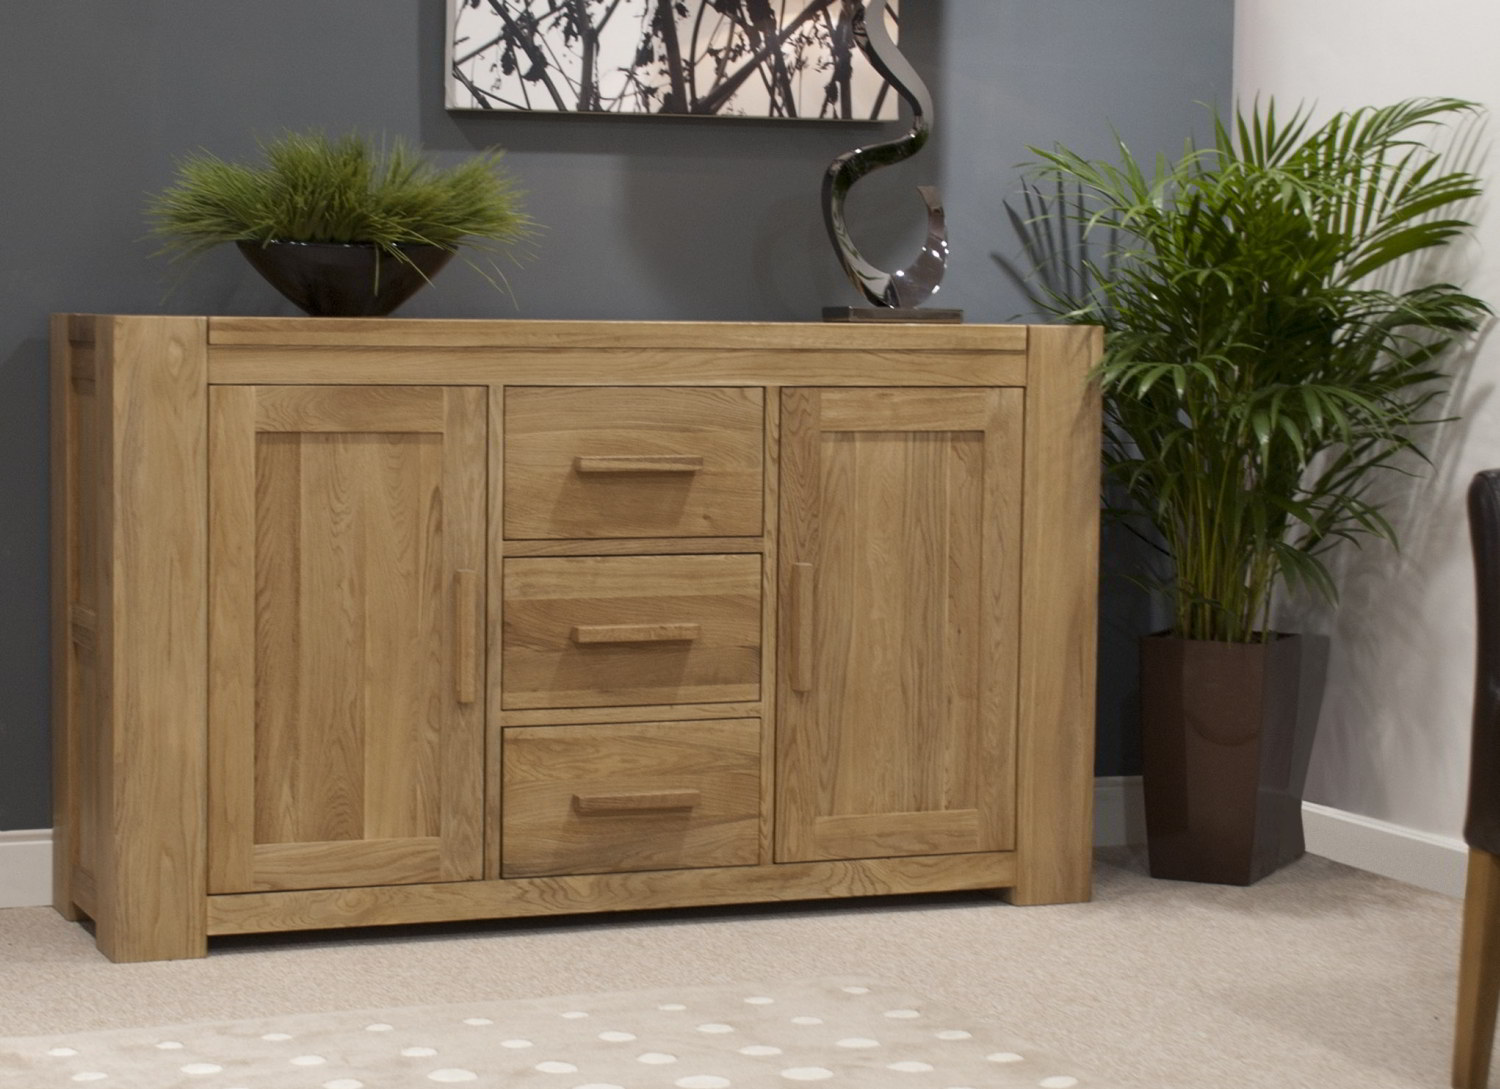 Solid Oak Living Dining Room Furniture Large Storage Sideboard EBay. Full resolution  portraiture, nominally Width 1500 Height 1089 pixels, portraiture with #51592C.